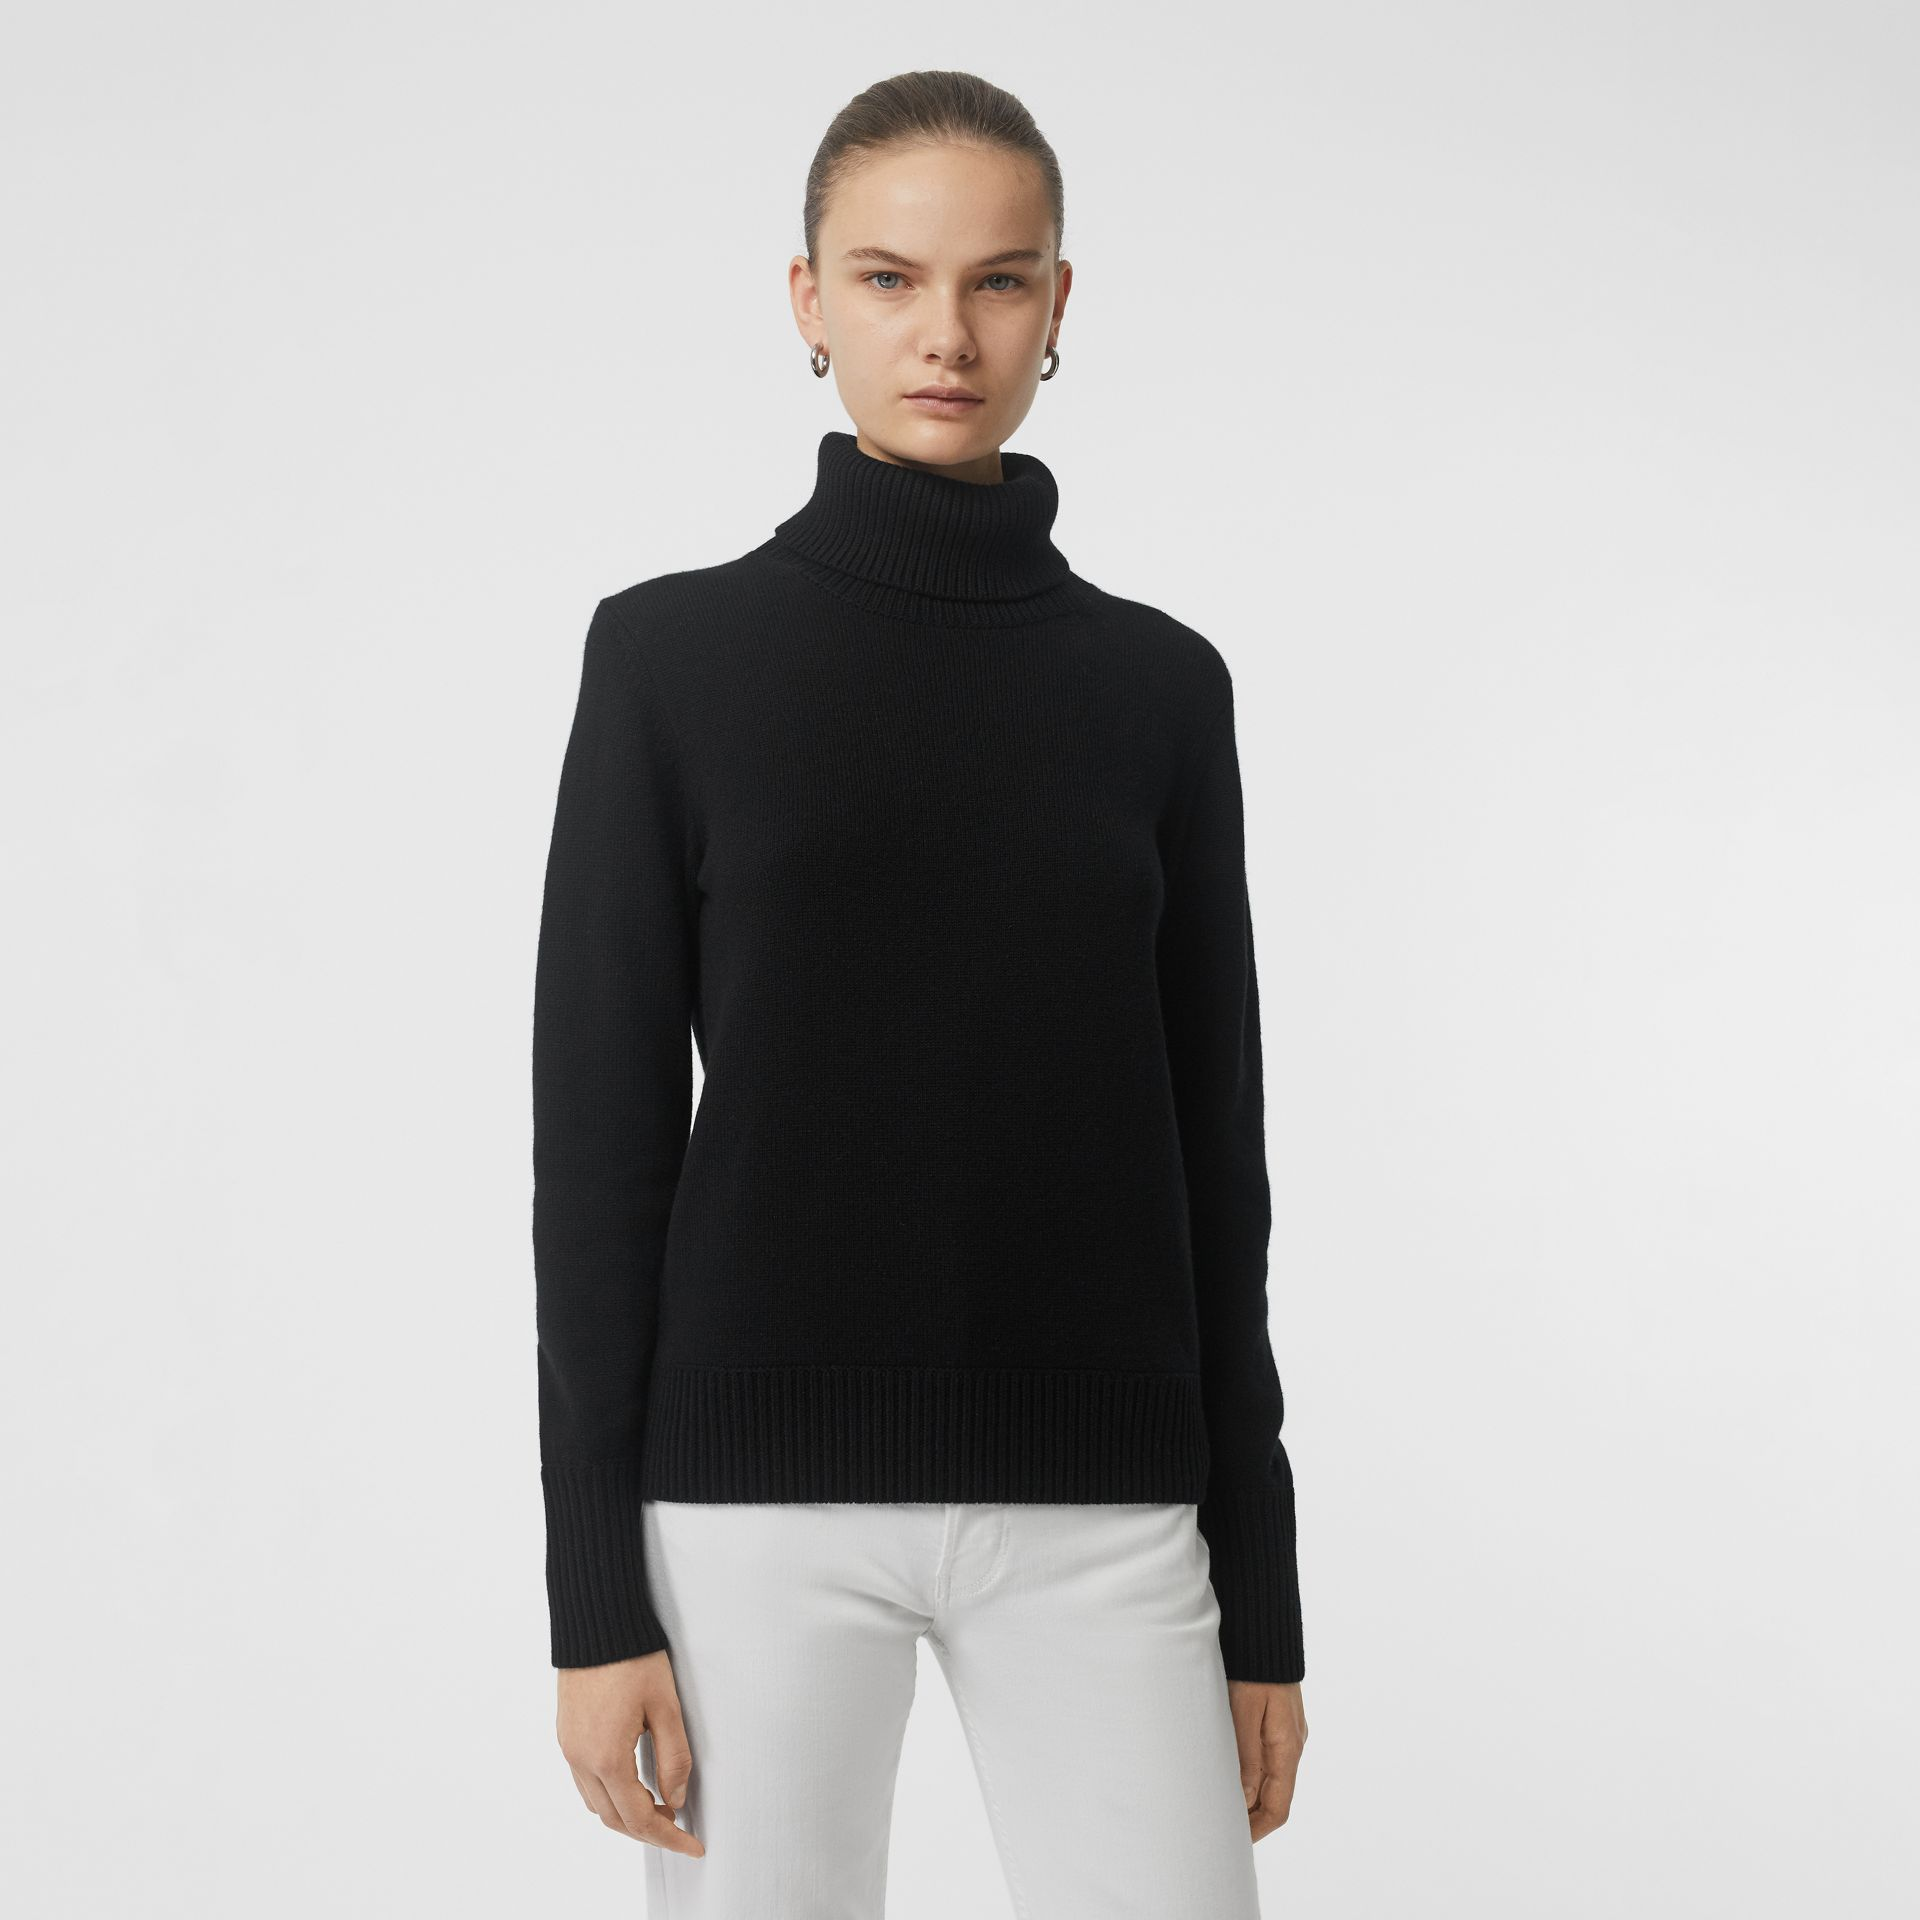 Embroidered Crest Cashmere Roll-neck Sweater in Black - Women | Burberry Australia - gallery image 0